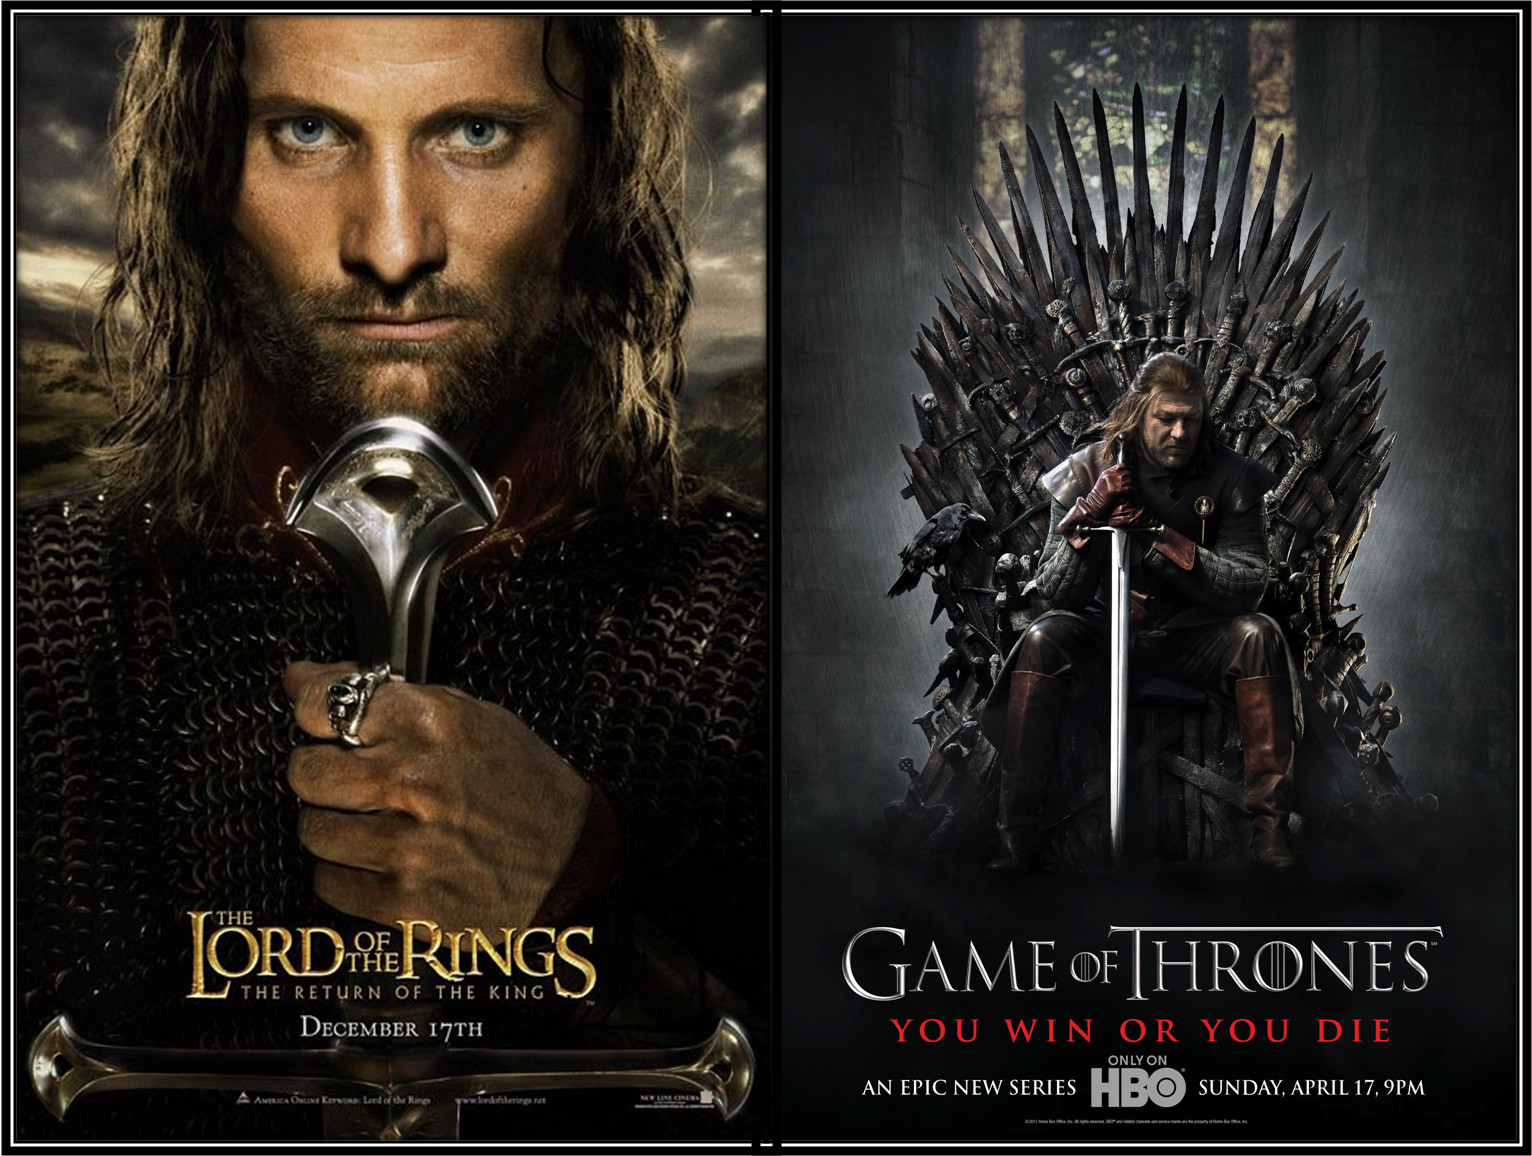 lord-of-the-rings-vs-game-of-thrones